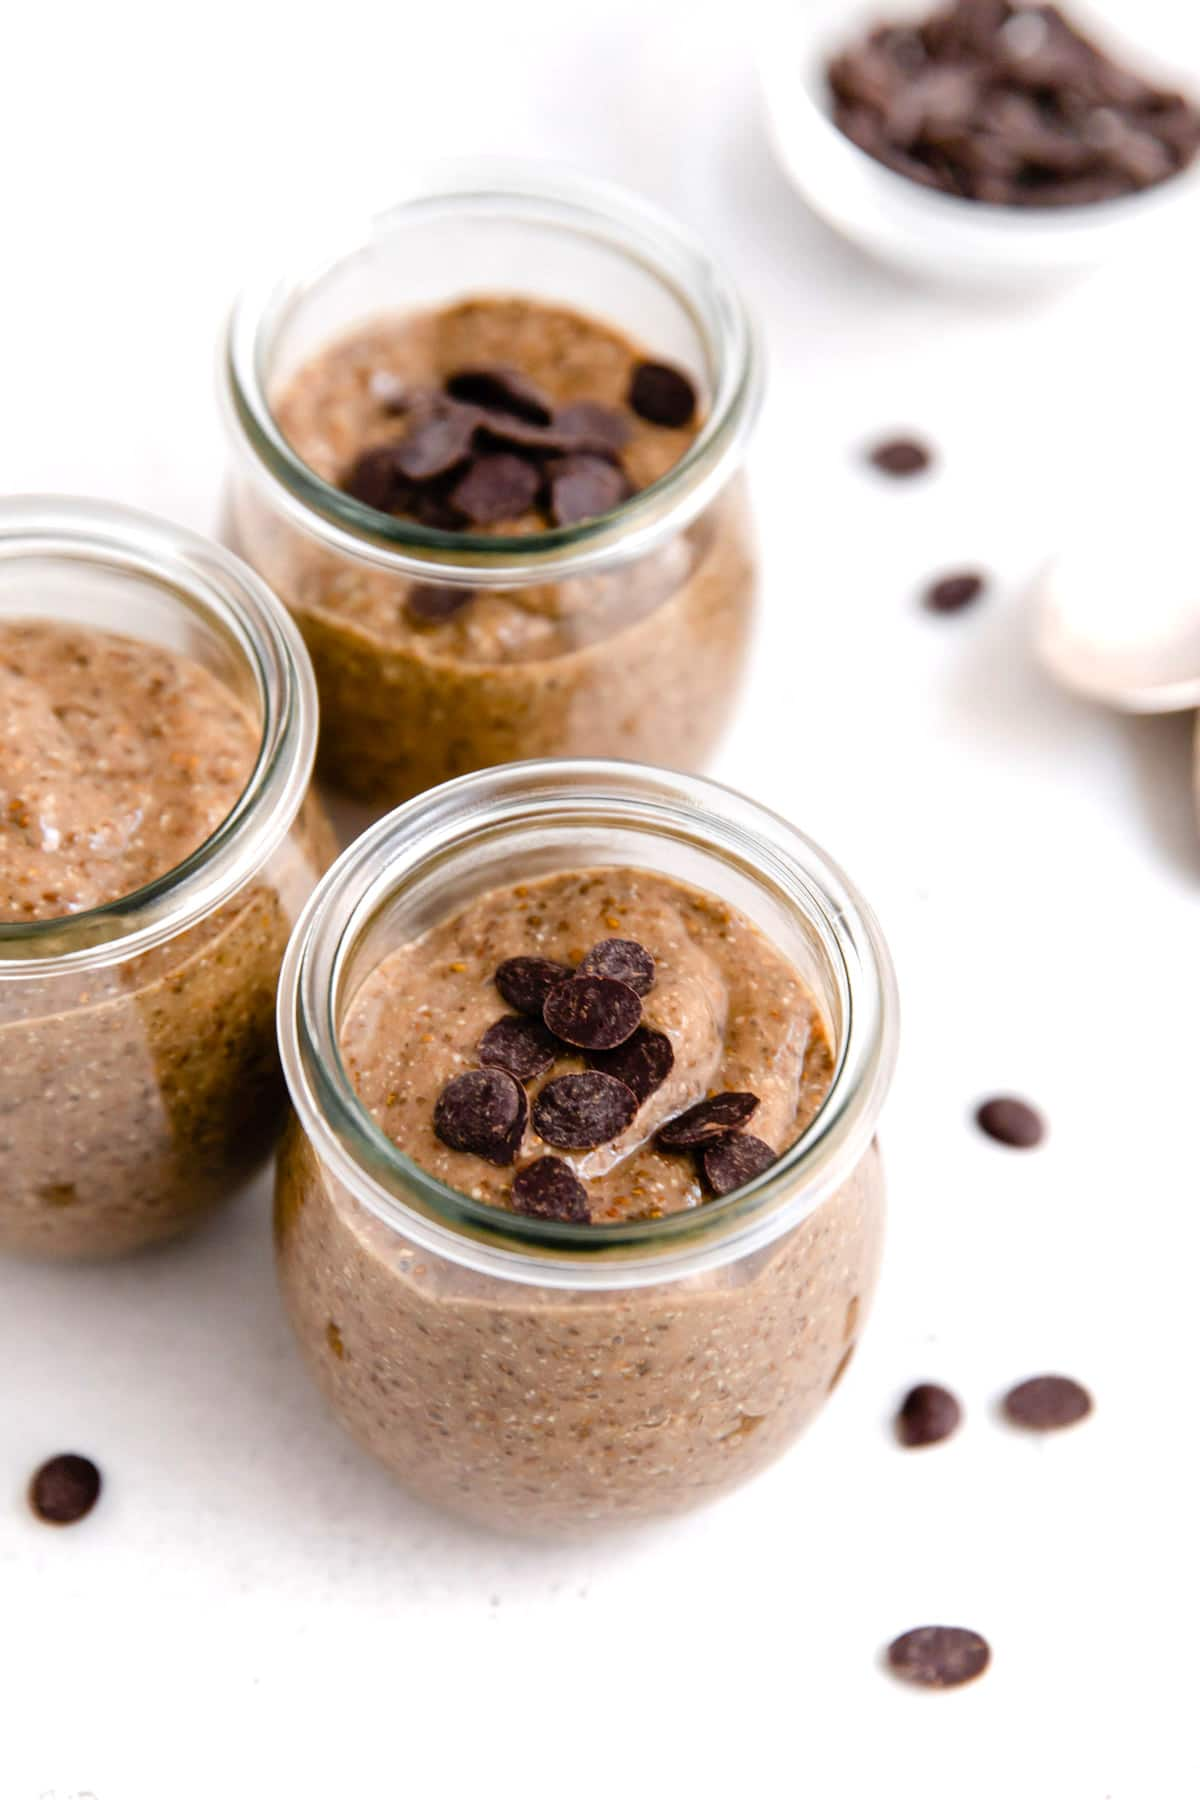 Coffee and Chocolate Chia Pudding